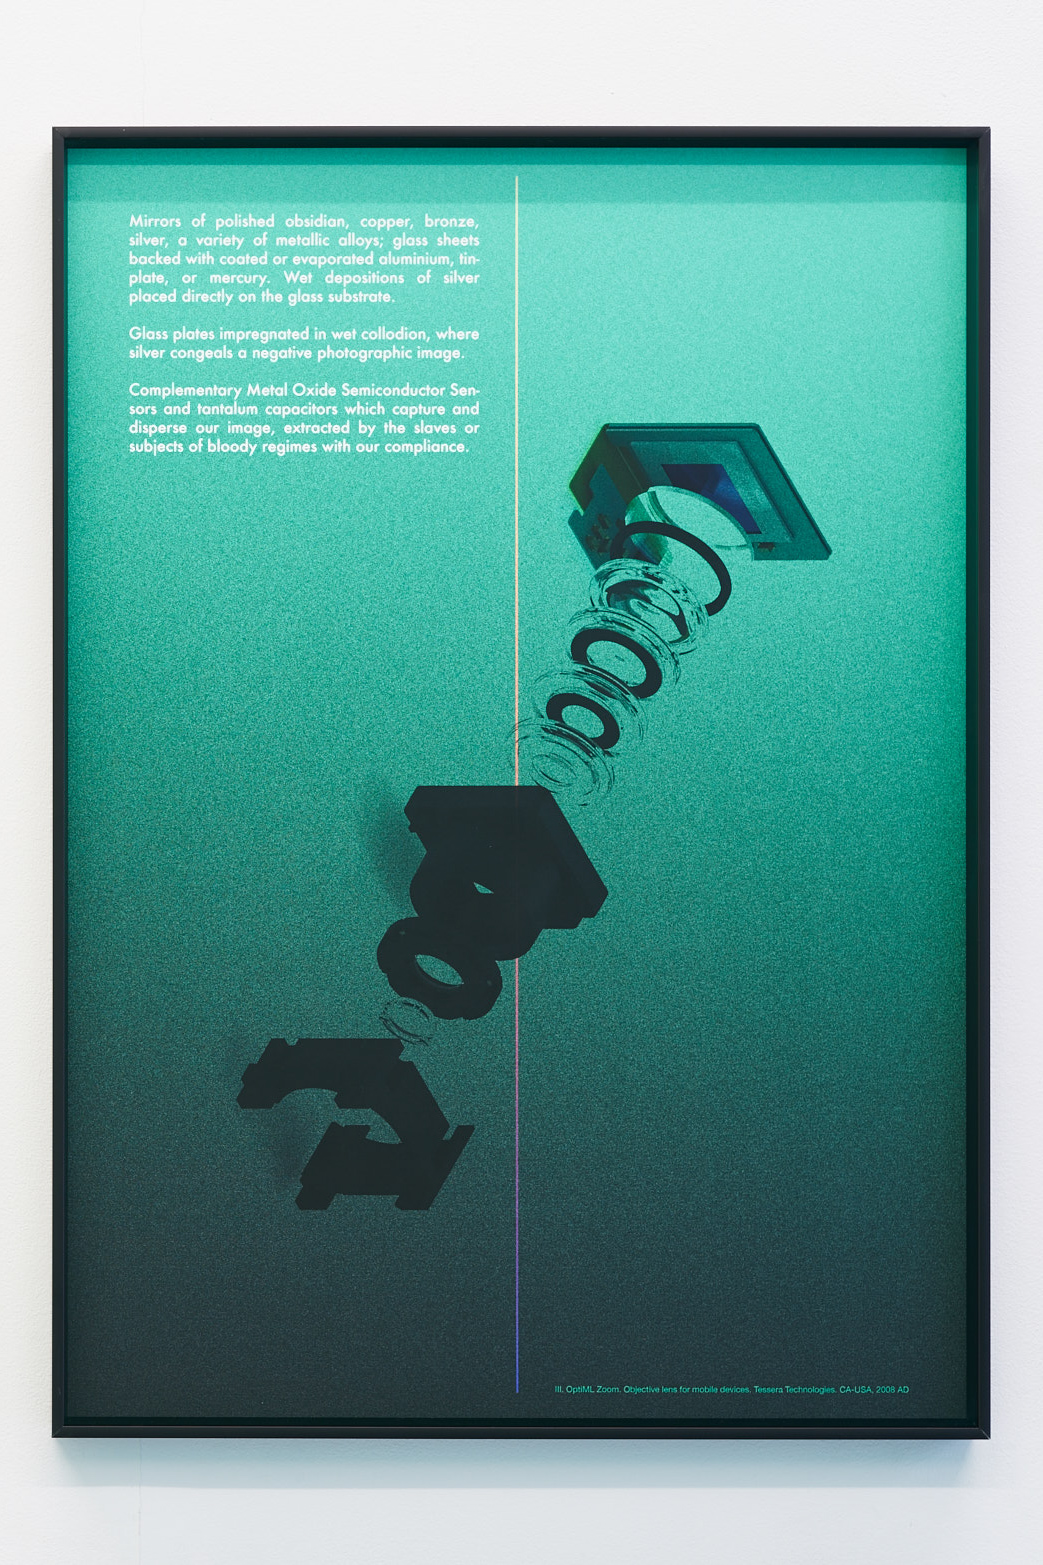 David Ferrando Giraut, Notes for a Genealogy of the Mineral Image, 2015. Digital prints on Hahnemuhle cotton paper, 50X70 cm each.